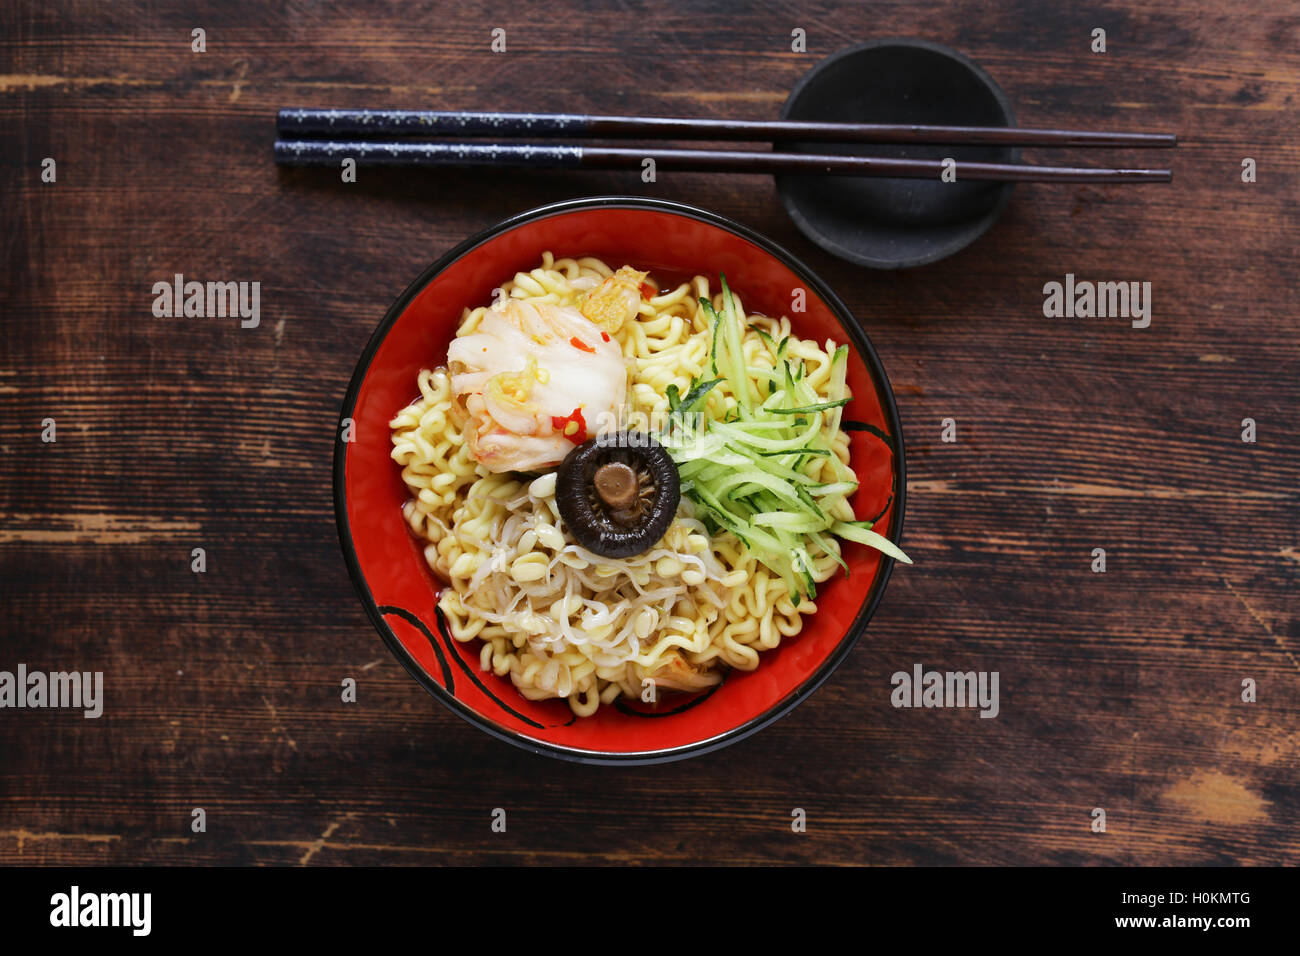 Asian food spicy ramen noodles with vegetables - Stock Image